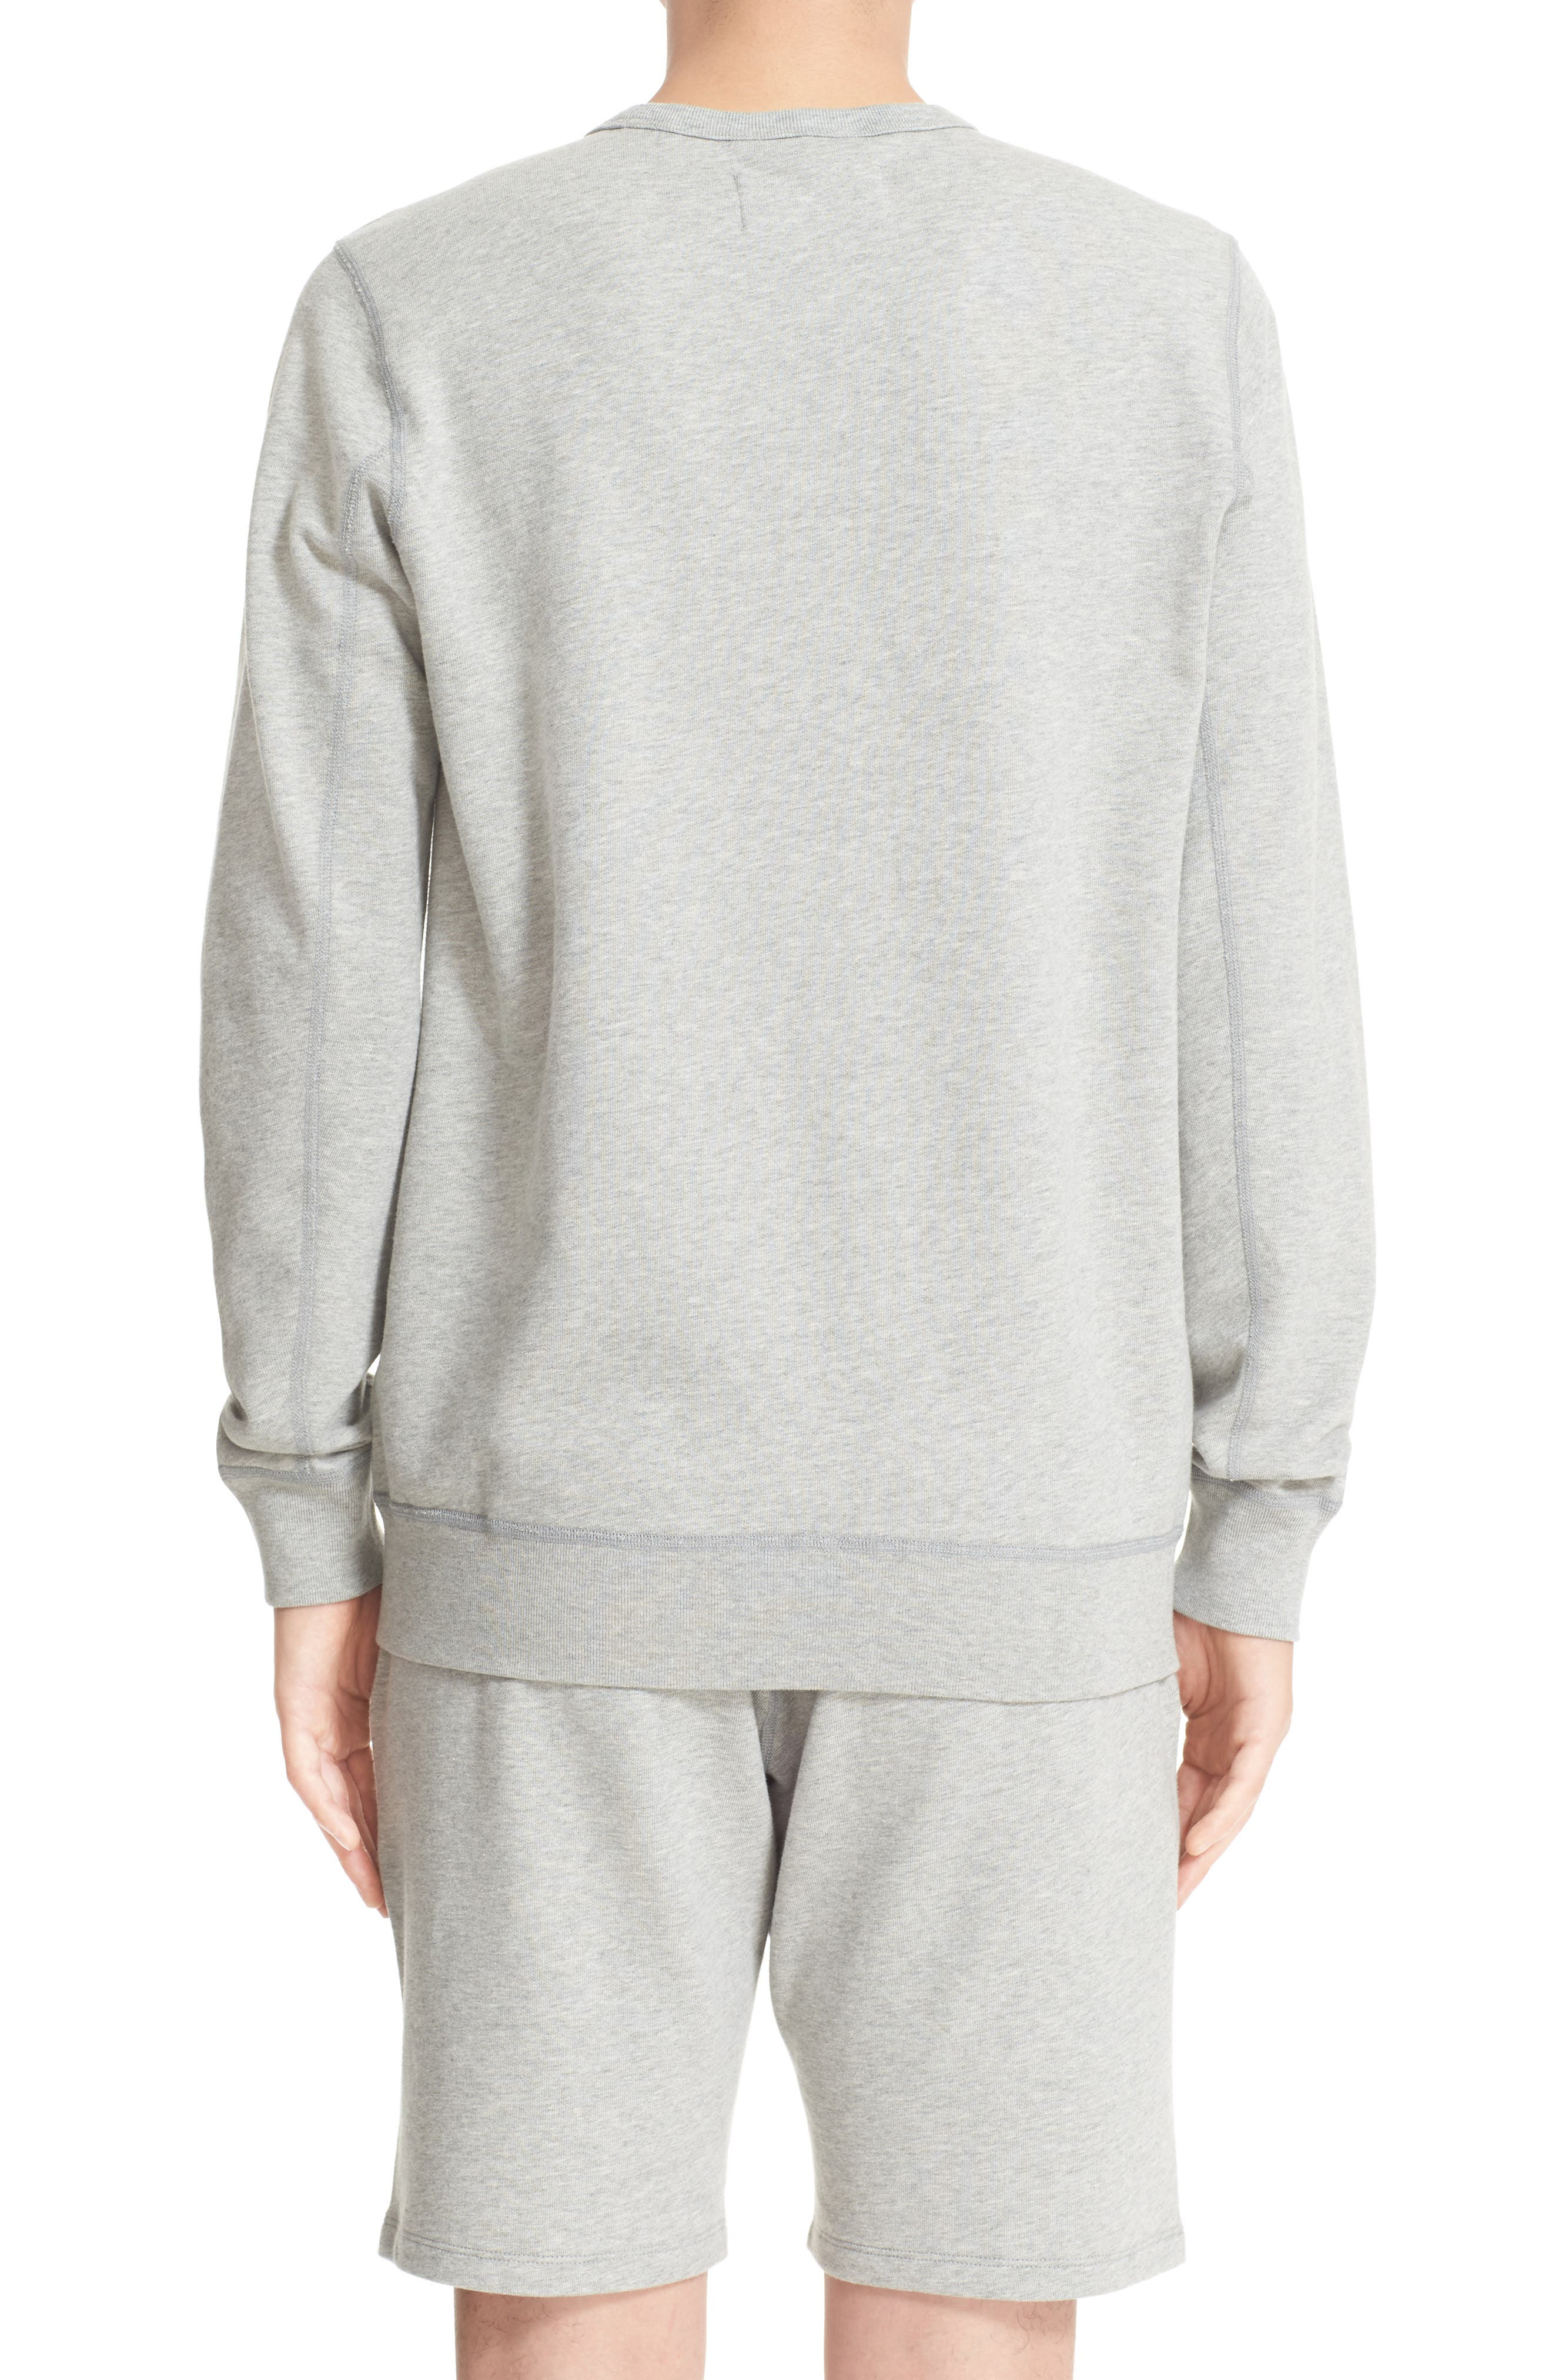 French Terry Sweatshirt,                             Alternate thumbnail 2, color,                             Heather Grey